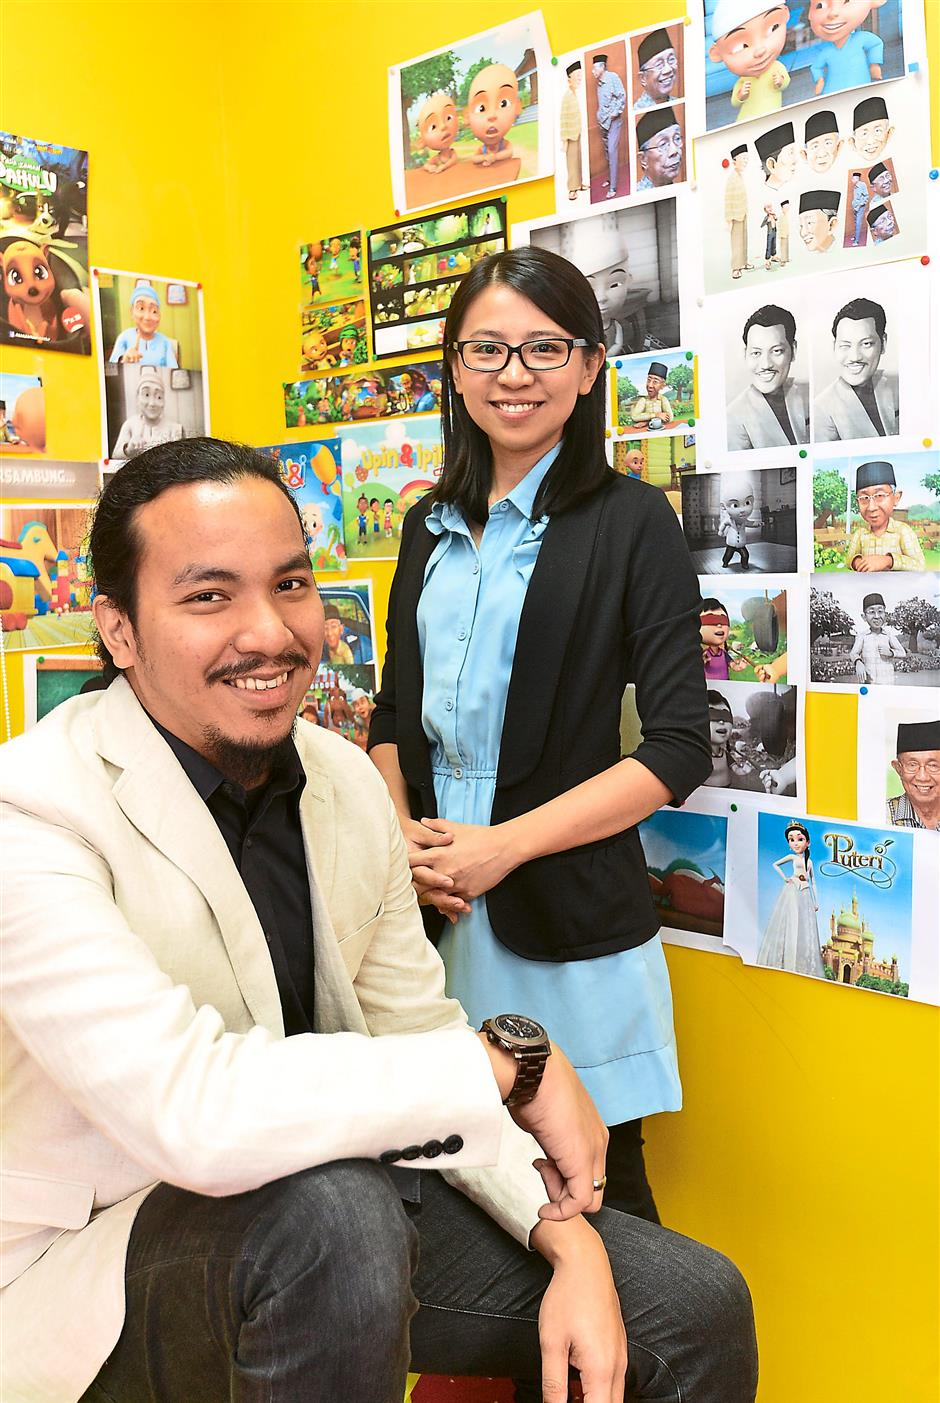 Young blood: Syed (left) and Tang are part of Les' Copaque's team which is mostly made up of fresh graduates.